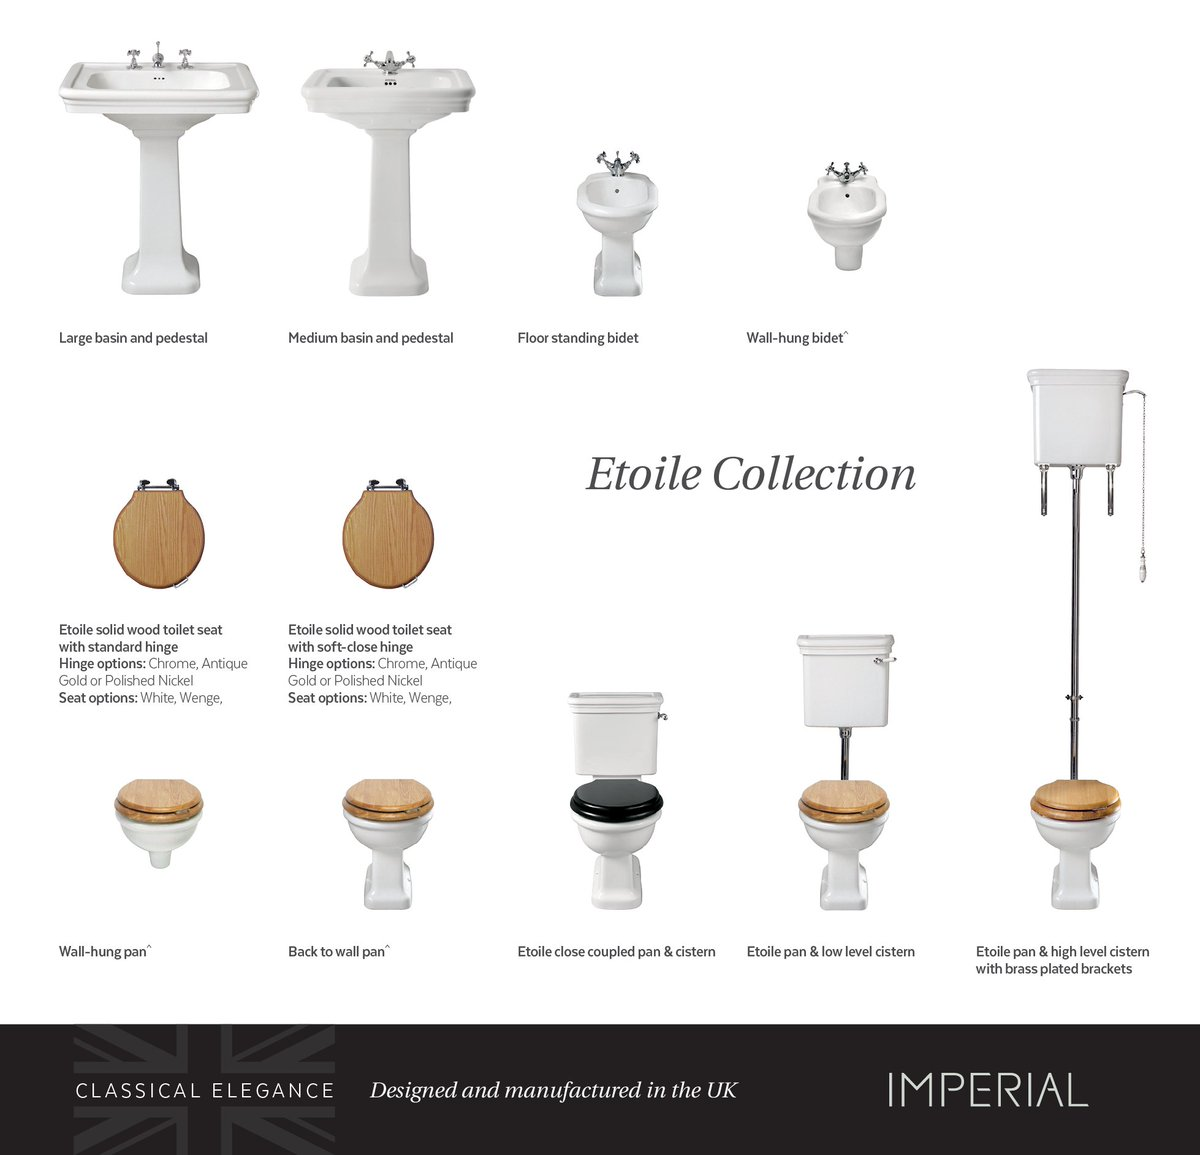 Imperial Bathrooms ImpBath Twitter - Soft close wooden toilet seat